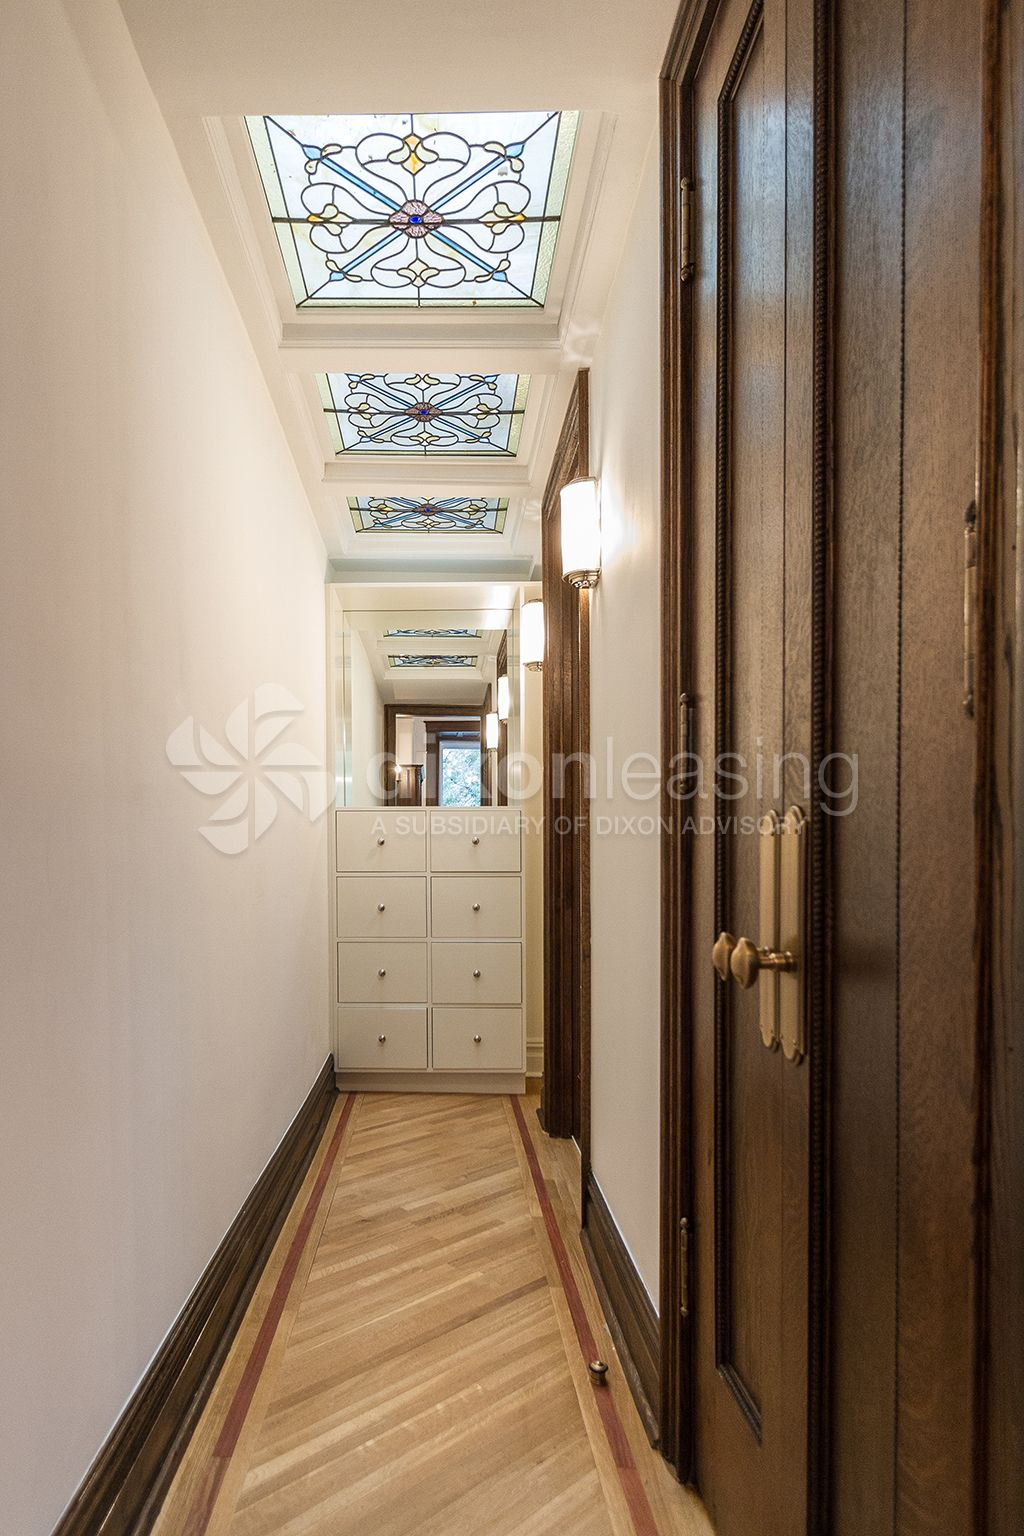 Photos And Video Of 10 Polhemus Place In Brooklyn Ny Skylight House House Rooms